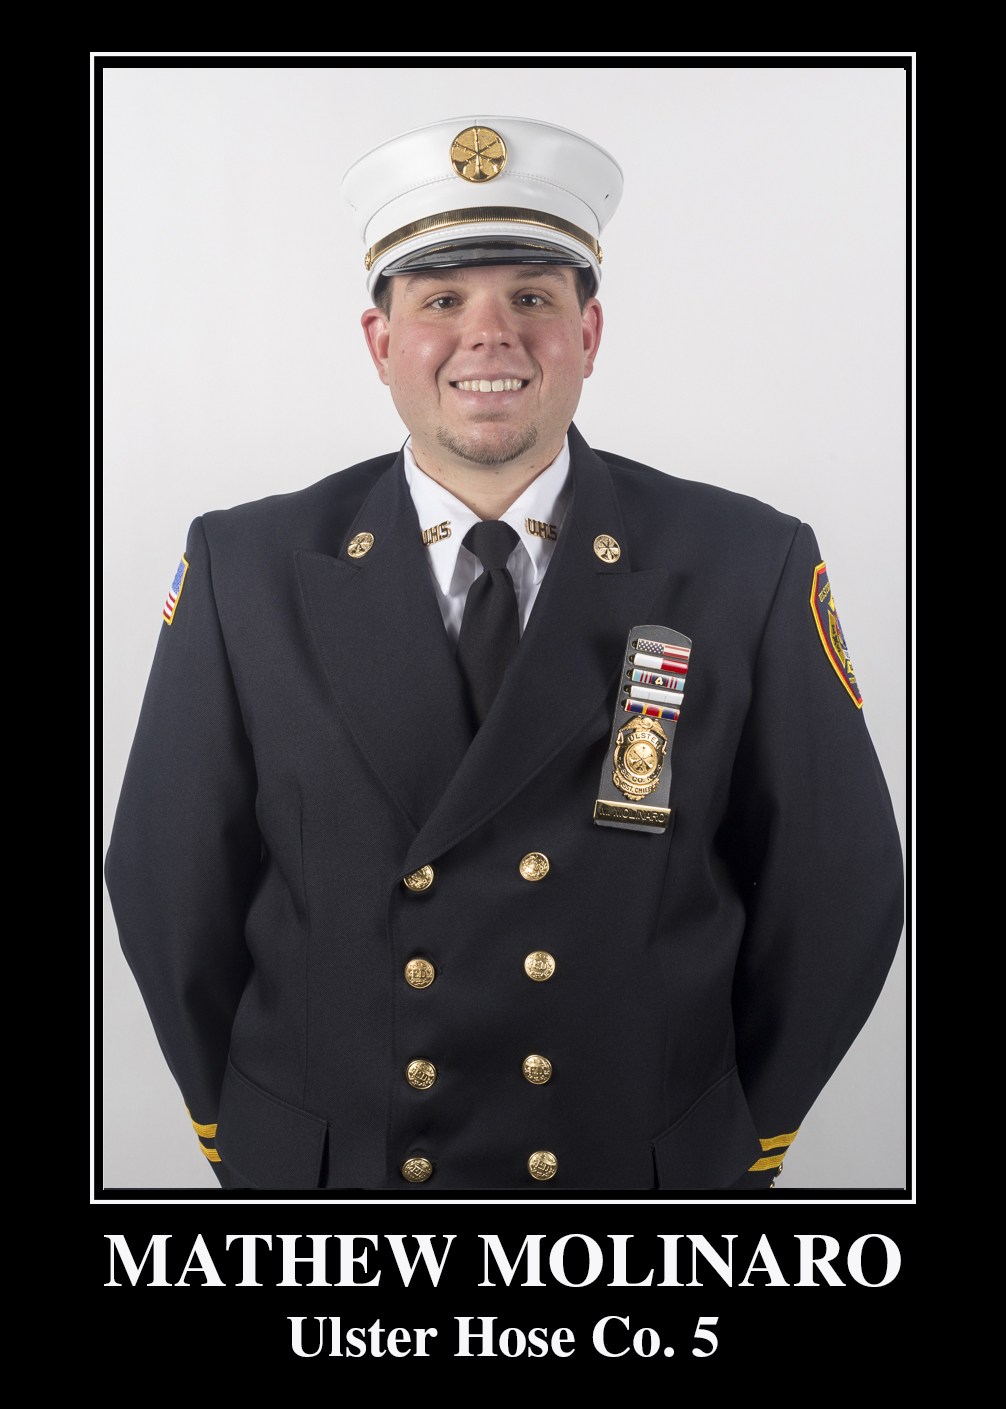 Asst. Chief Mathew Molinaro